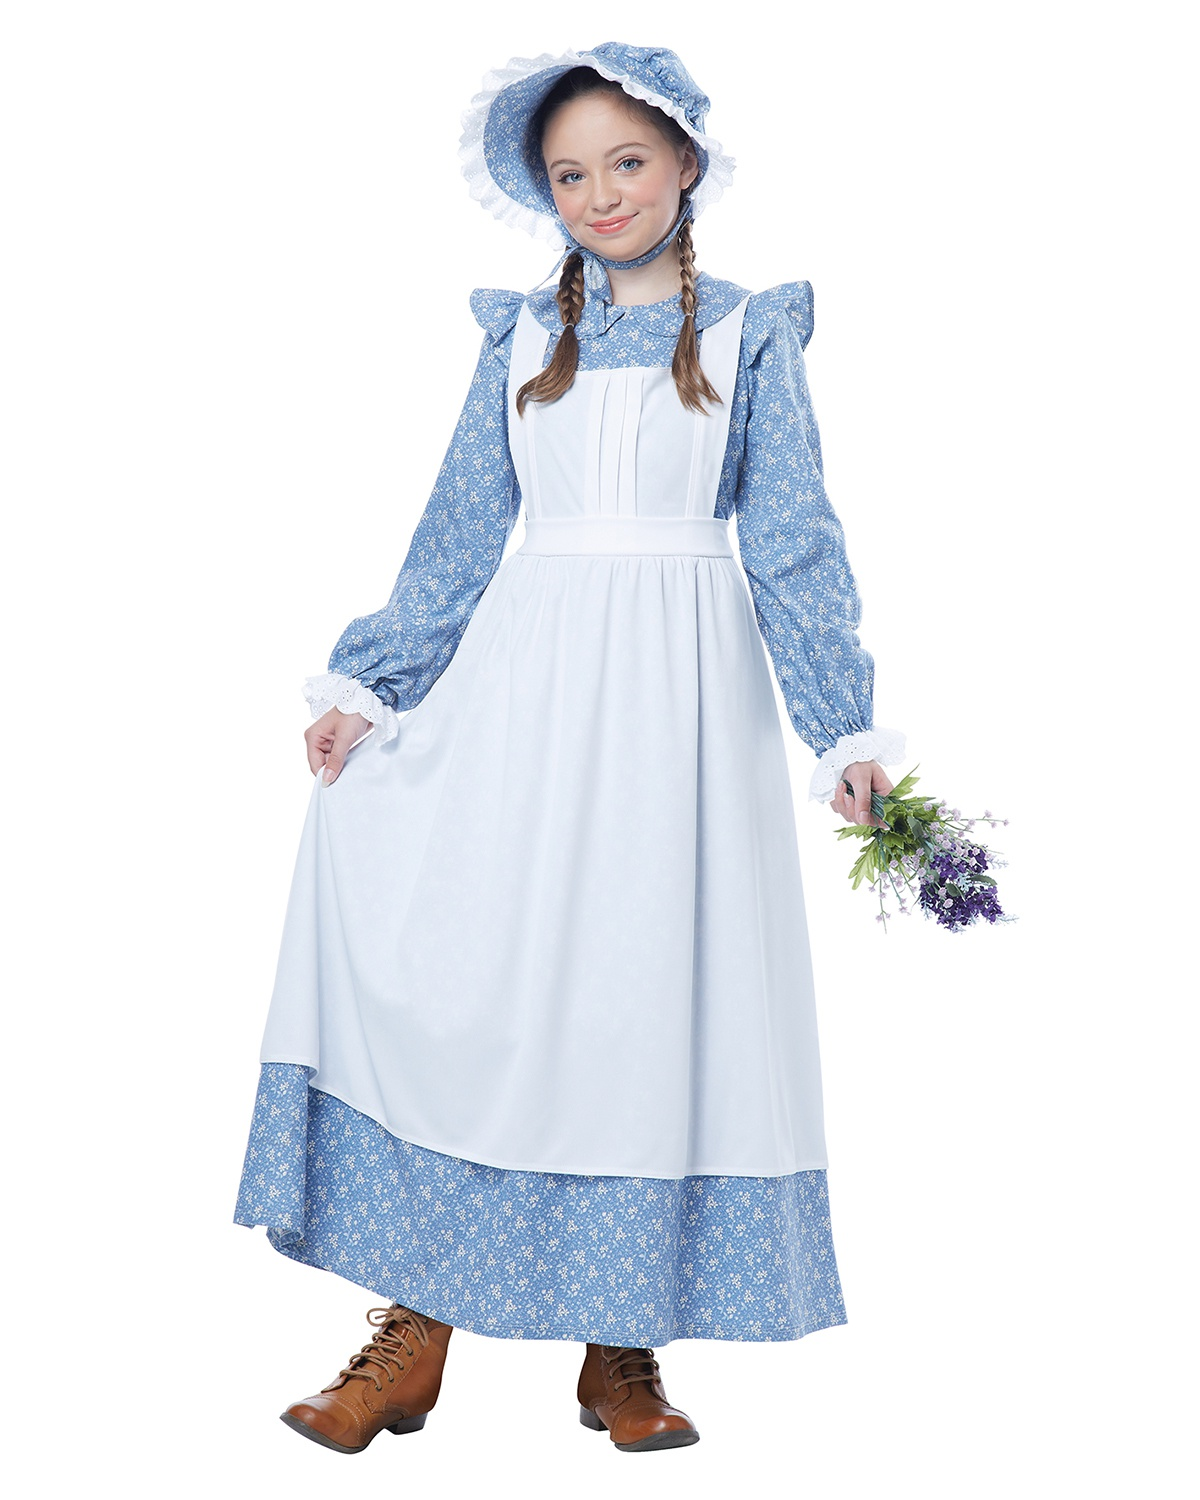 'California Costumes 00480 Pioneer Girl Child Costume'